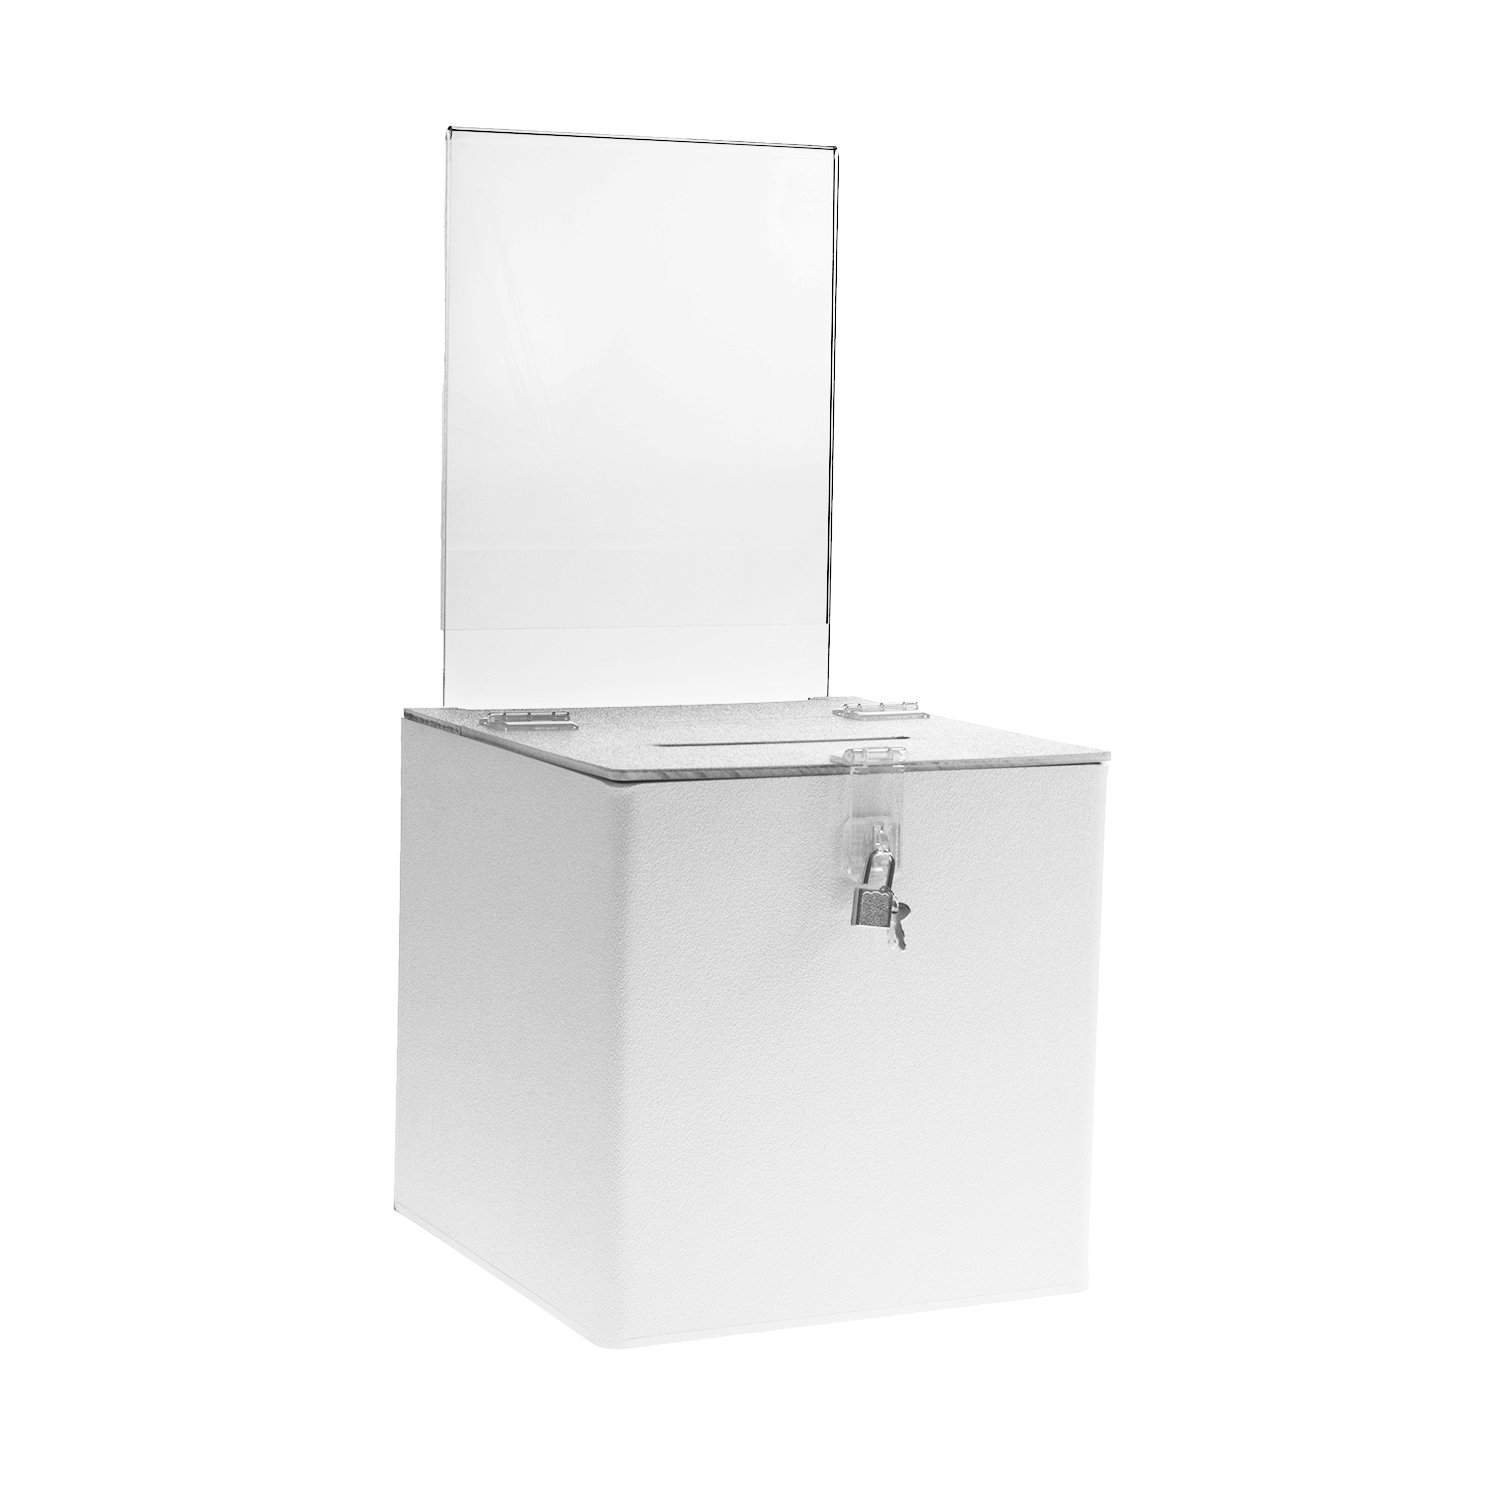 Source One Deluxe Acrylic Donation Box with Sign Holder & Hasp Lock, Multiple Sizes, Black, White & Clear Options (12 Inch, White)